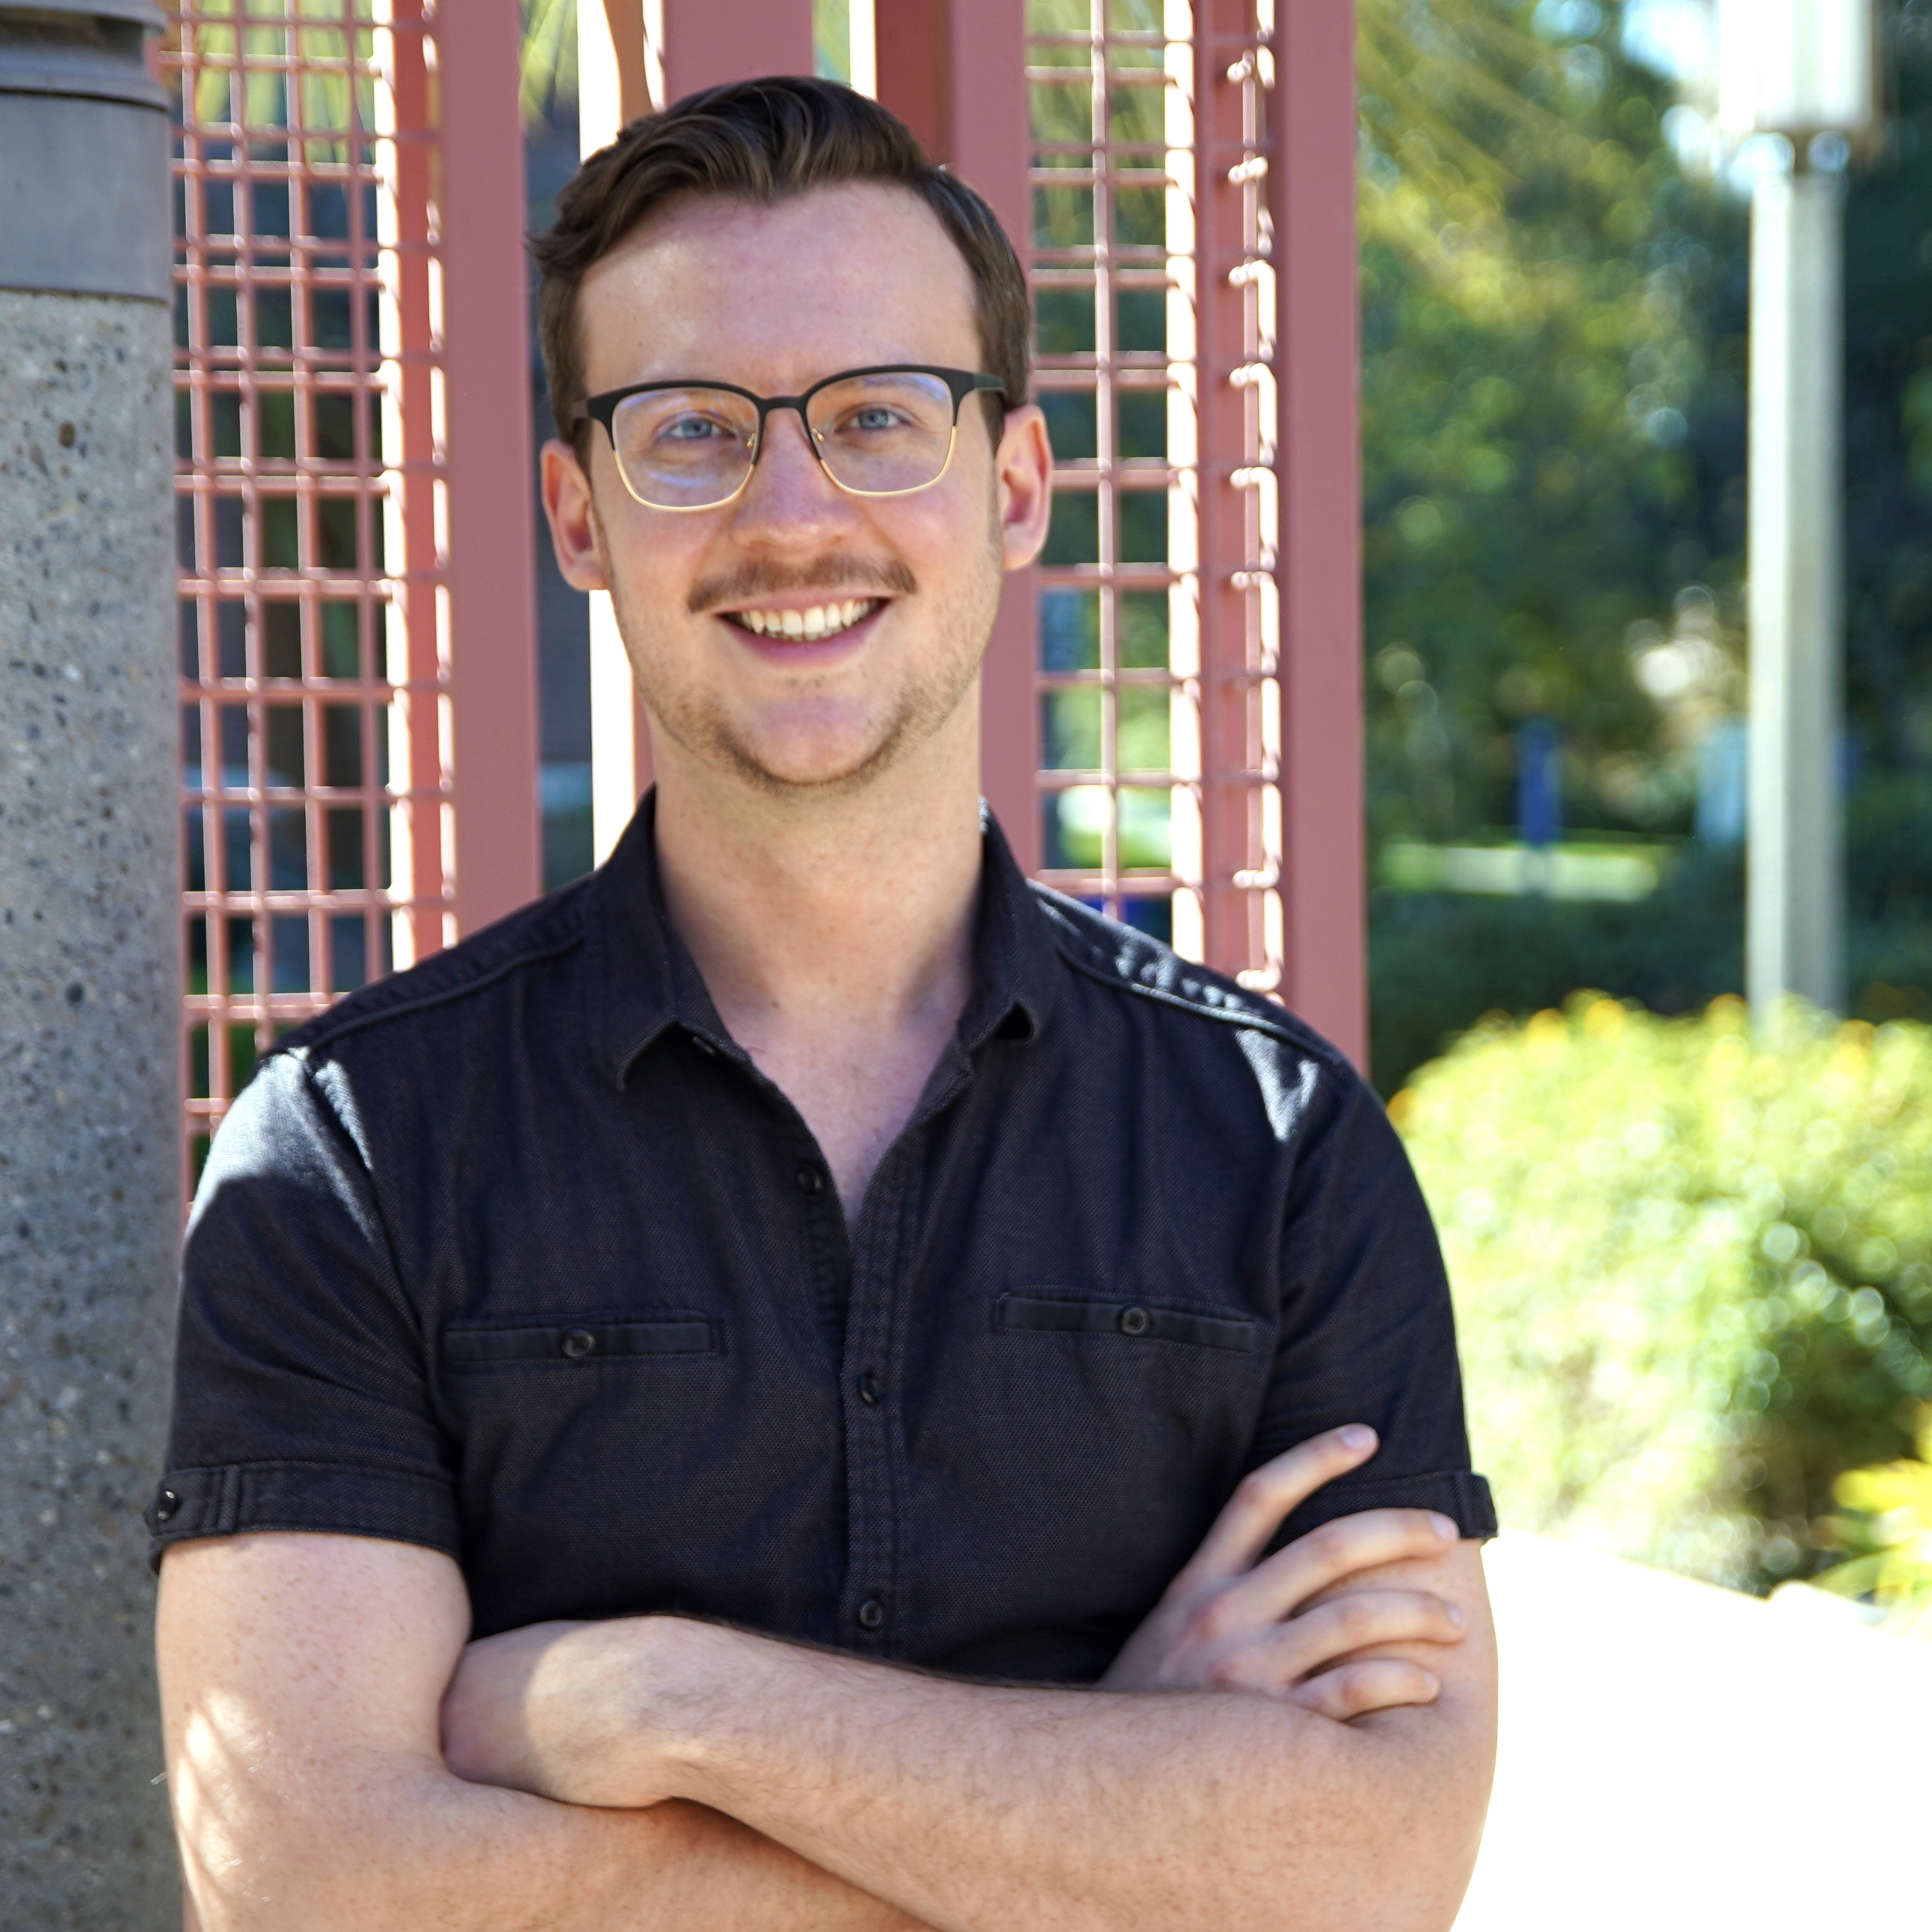 A photograph of me in a black shirt and glasses, with my arms crossed and smiling, in front of a red lattice and bushes outside on UC Irvine's campus.